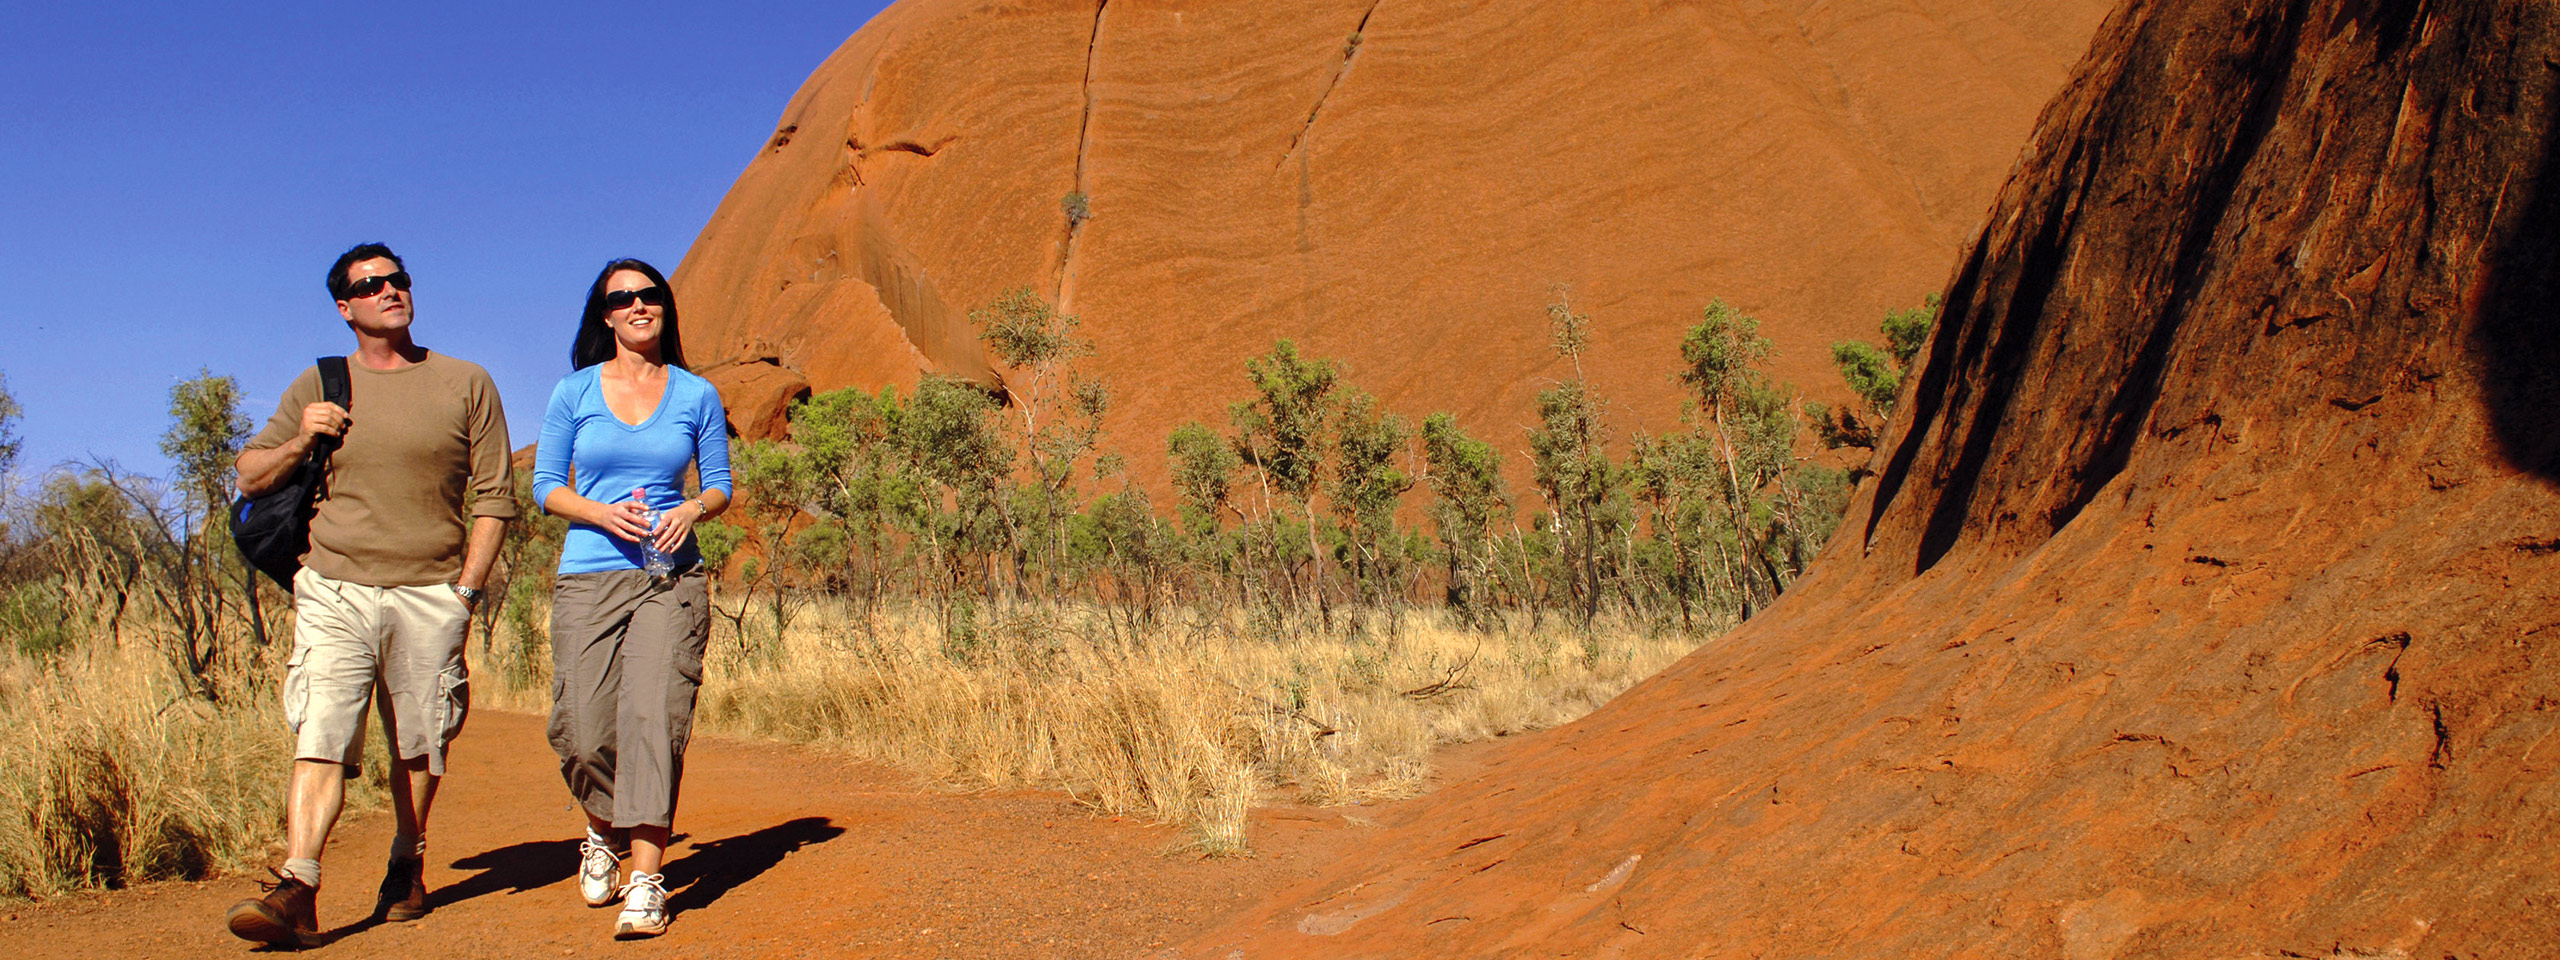 Base of Ayers Rock